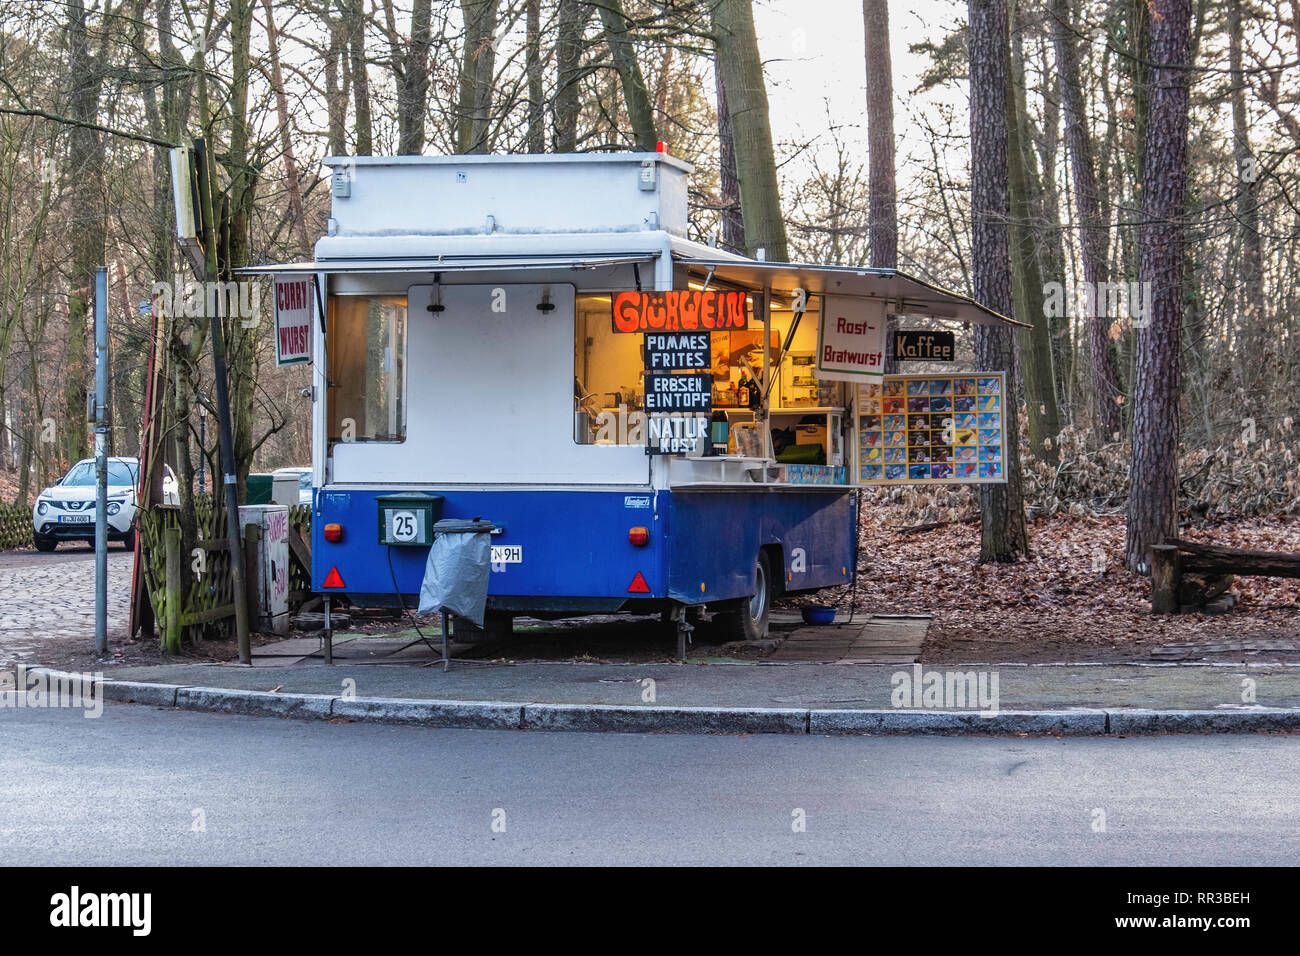 Berlin- Zehlendorf. Krumme Lanke.Caravan fast food outlet selling food and drink. Bratwurst, Chips & Gluhwein Stock Photo